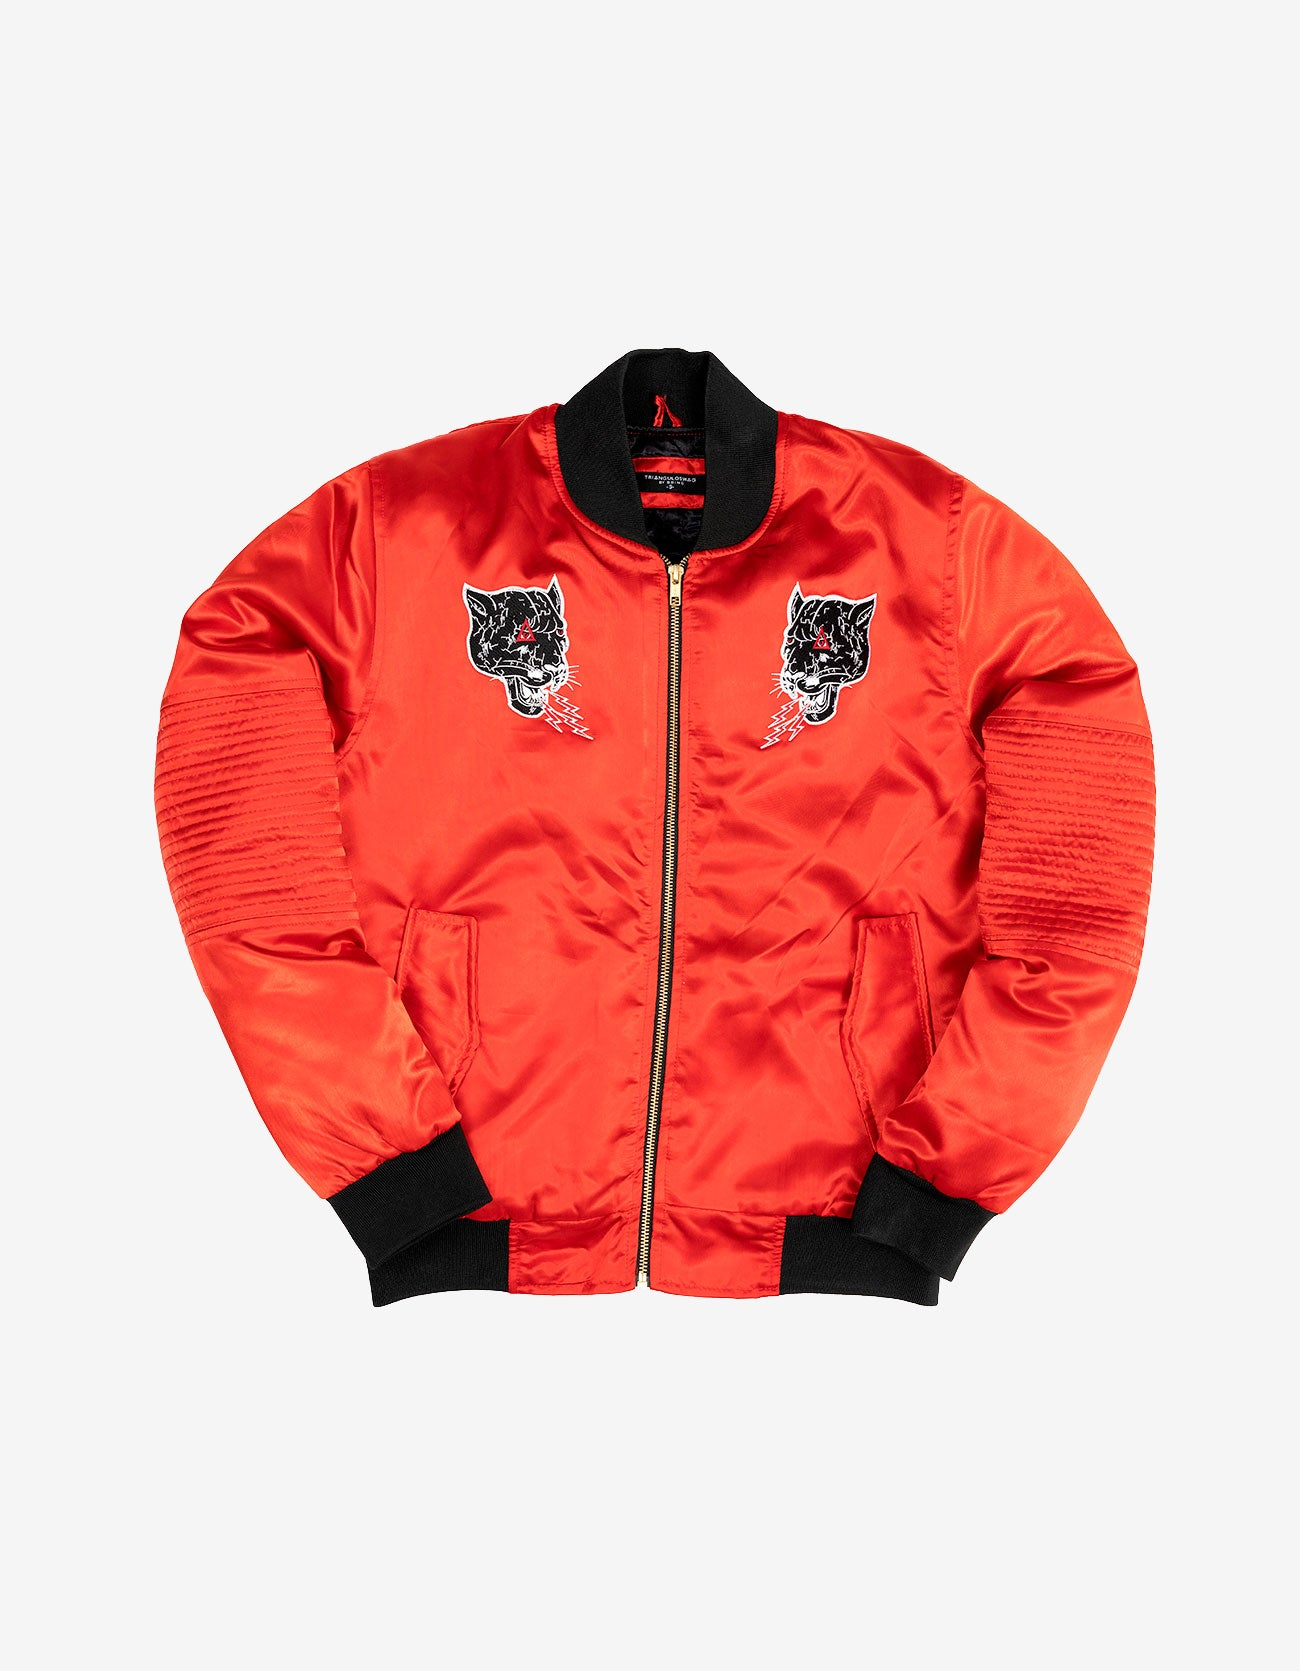 PANTHER RED LIMITED EDITION JACKET